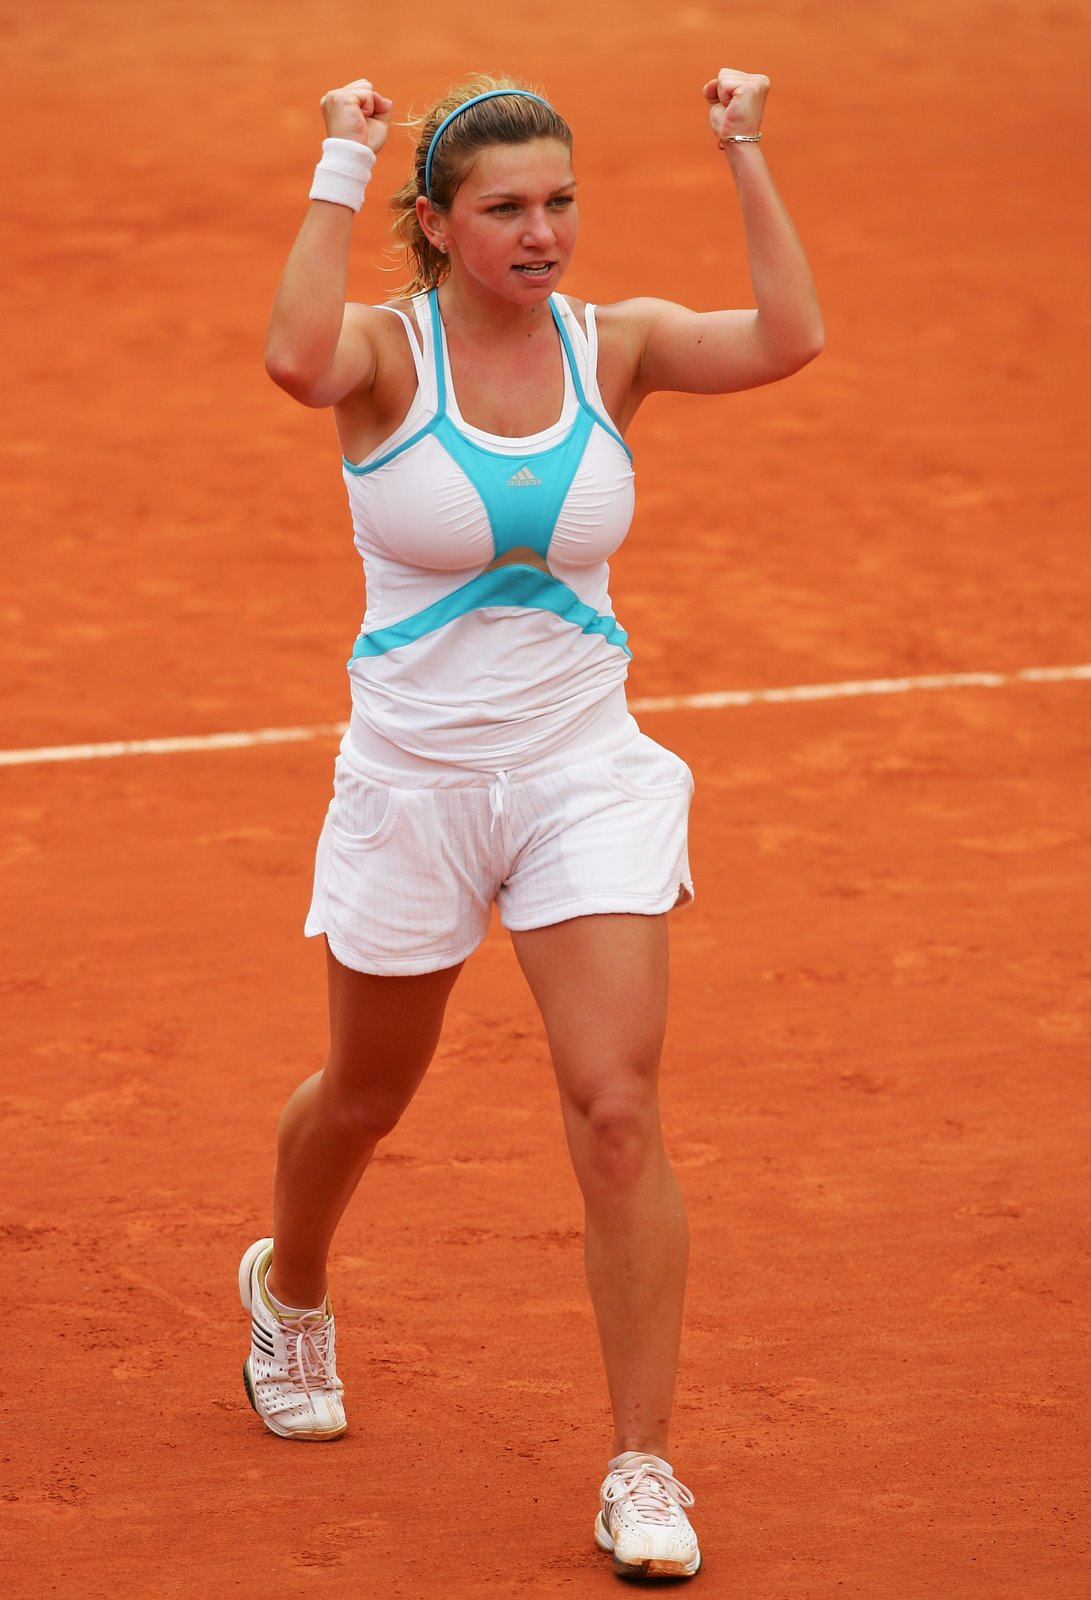 what do you think about simona halep? | page 2 | tennis frontier forums